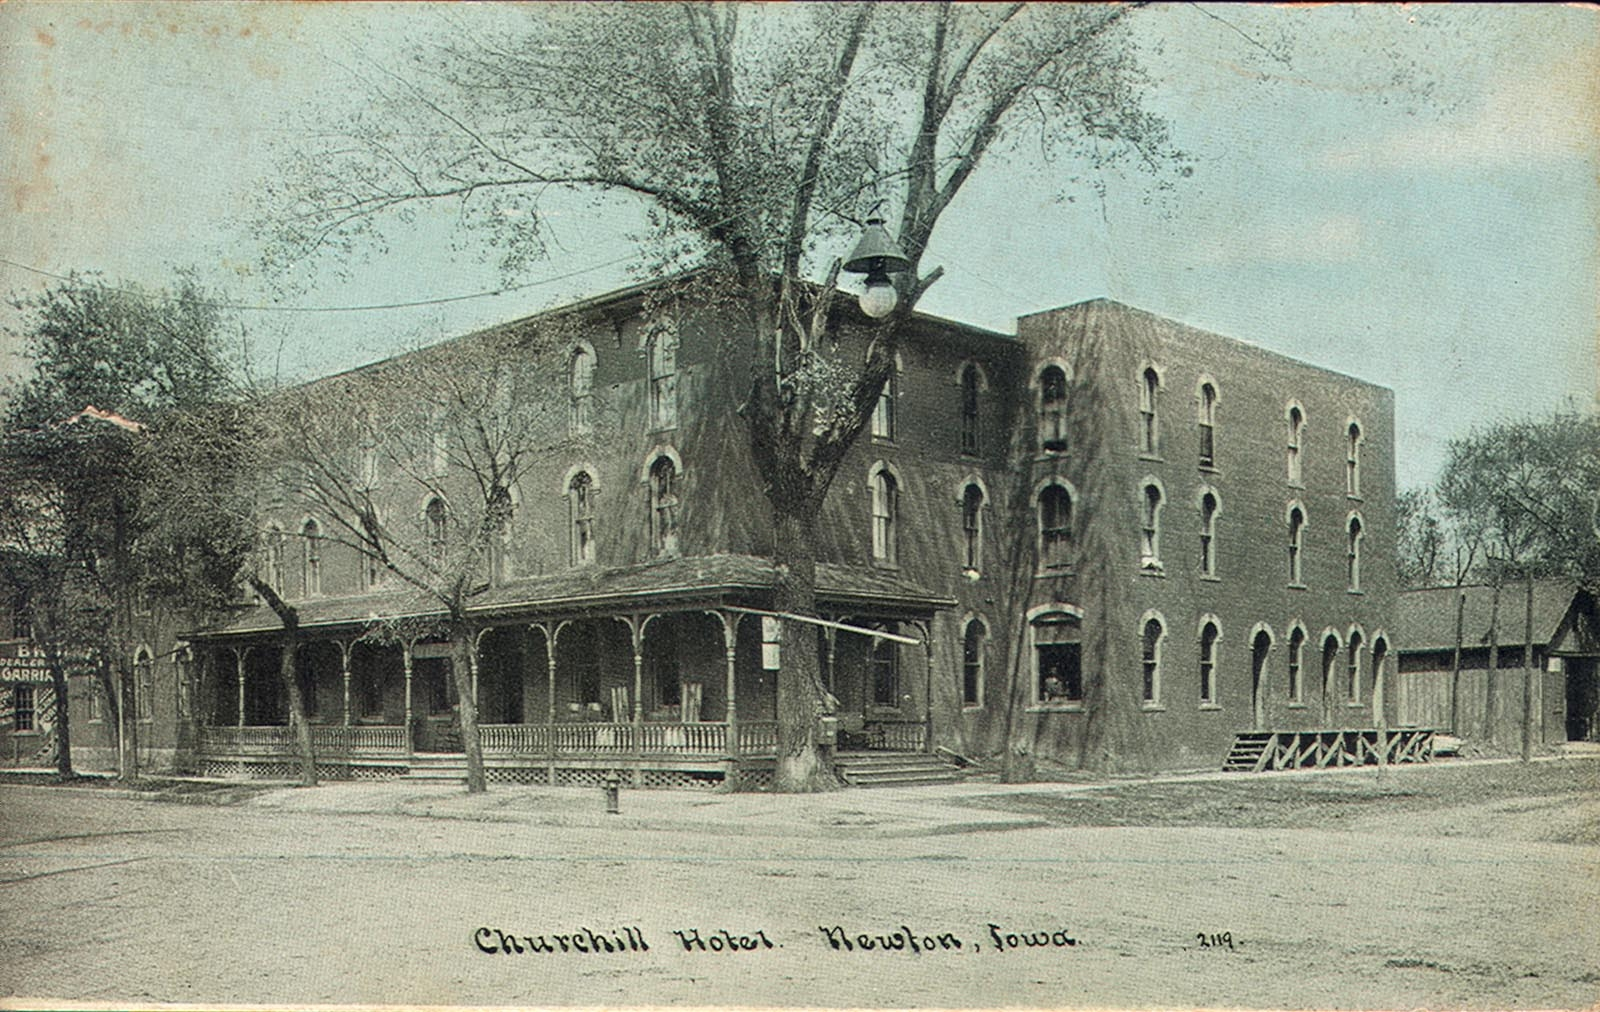 Churchill Hotel Newton Iowa